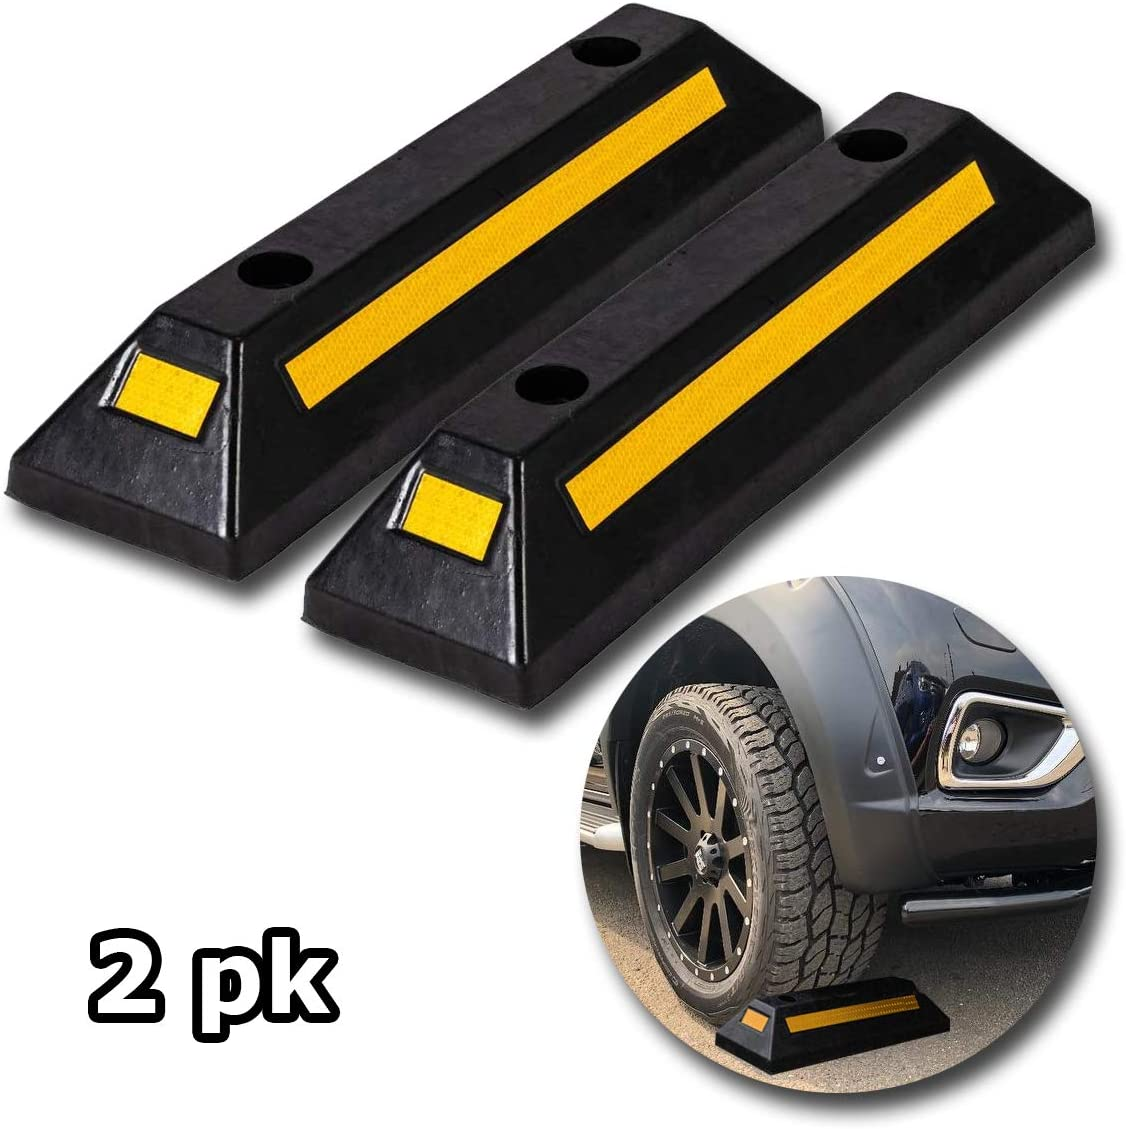 VaygWay Rubber Great interest Parking Excellence Curb Guide Car Heavy Duty –